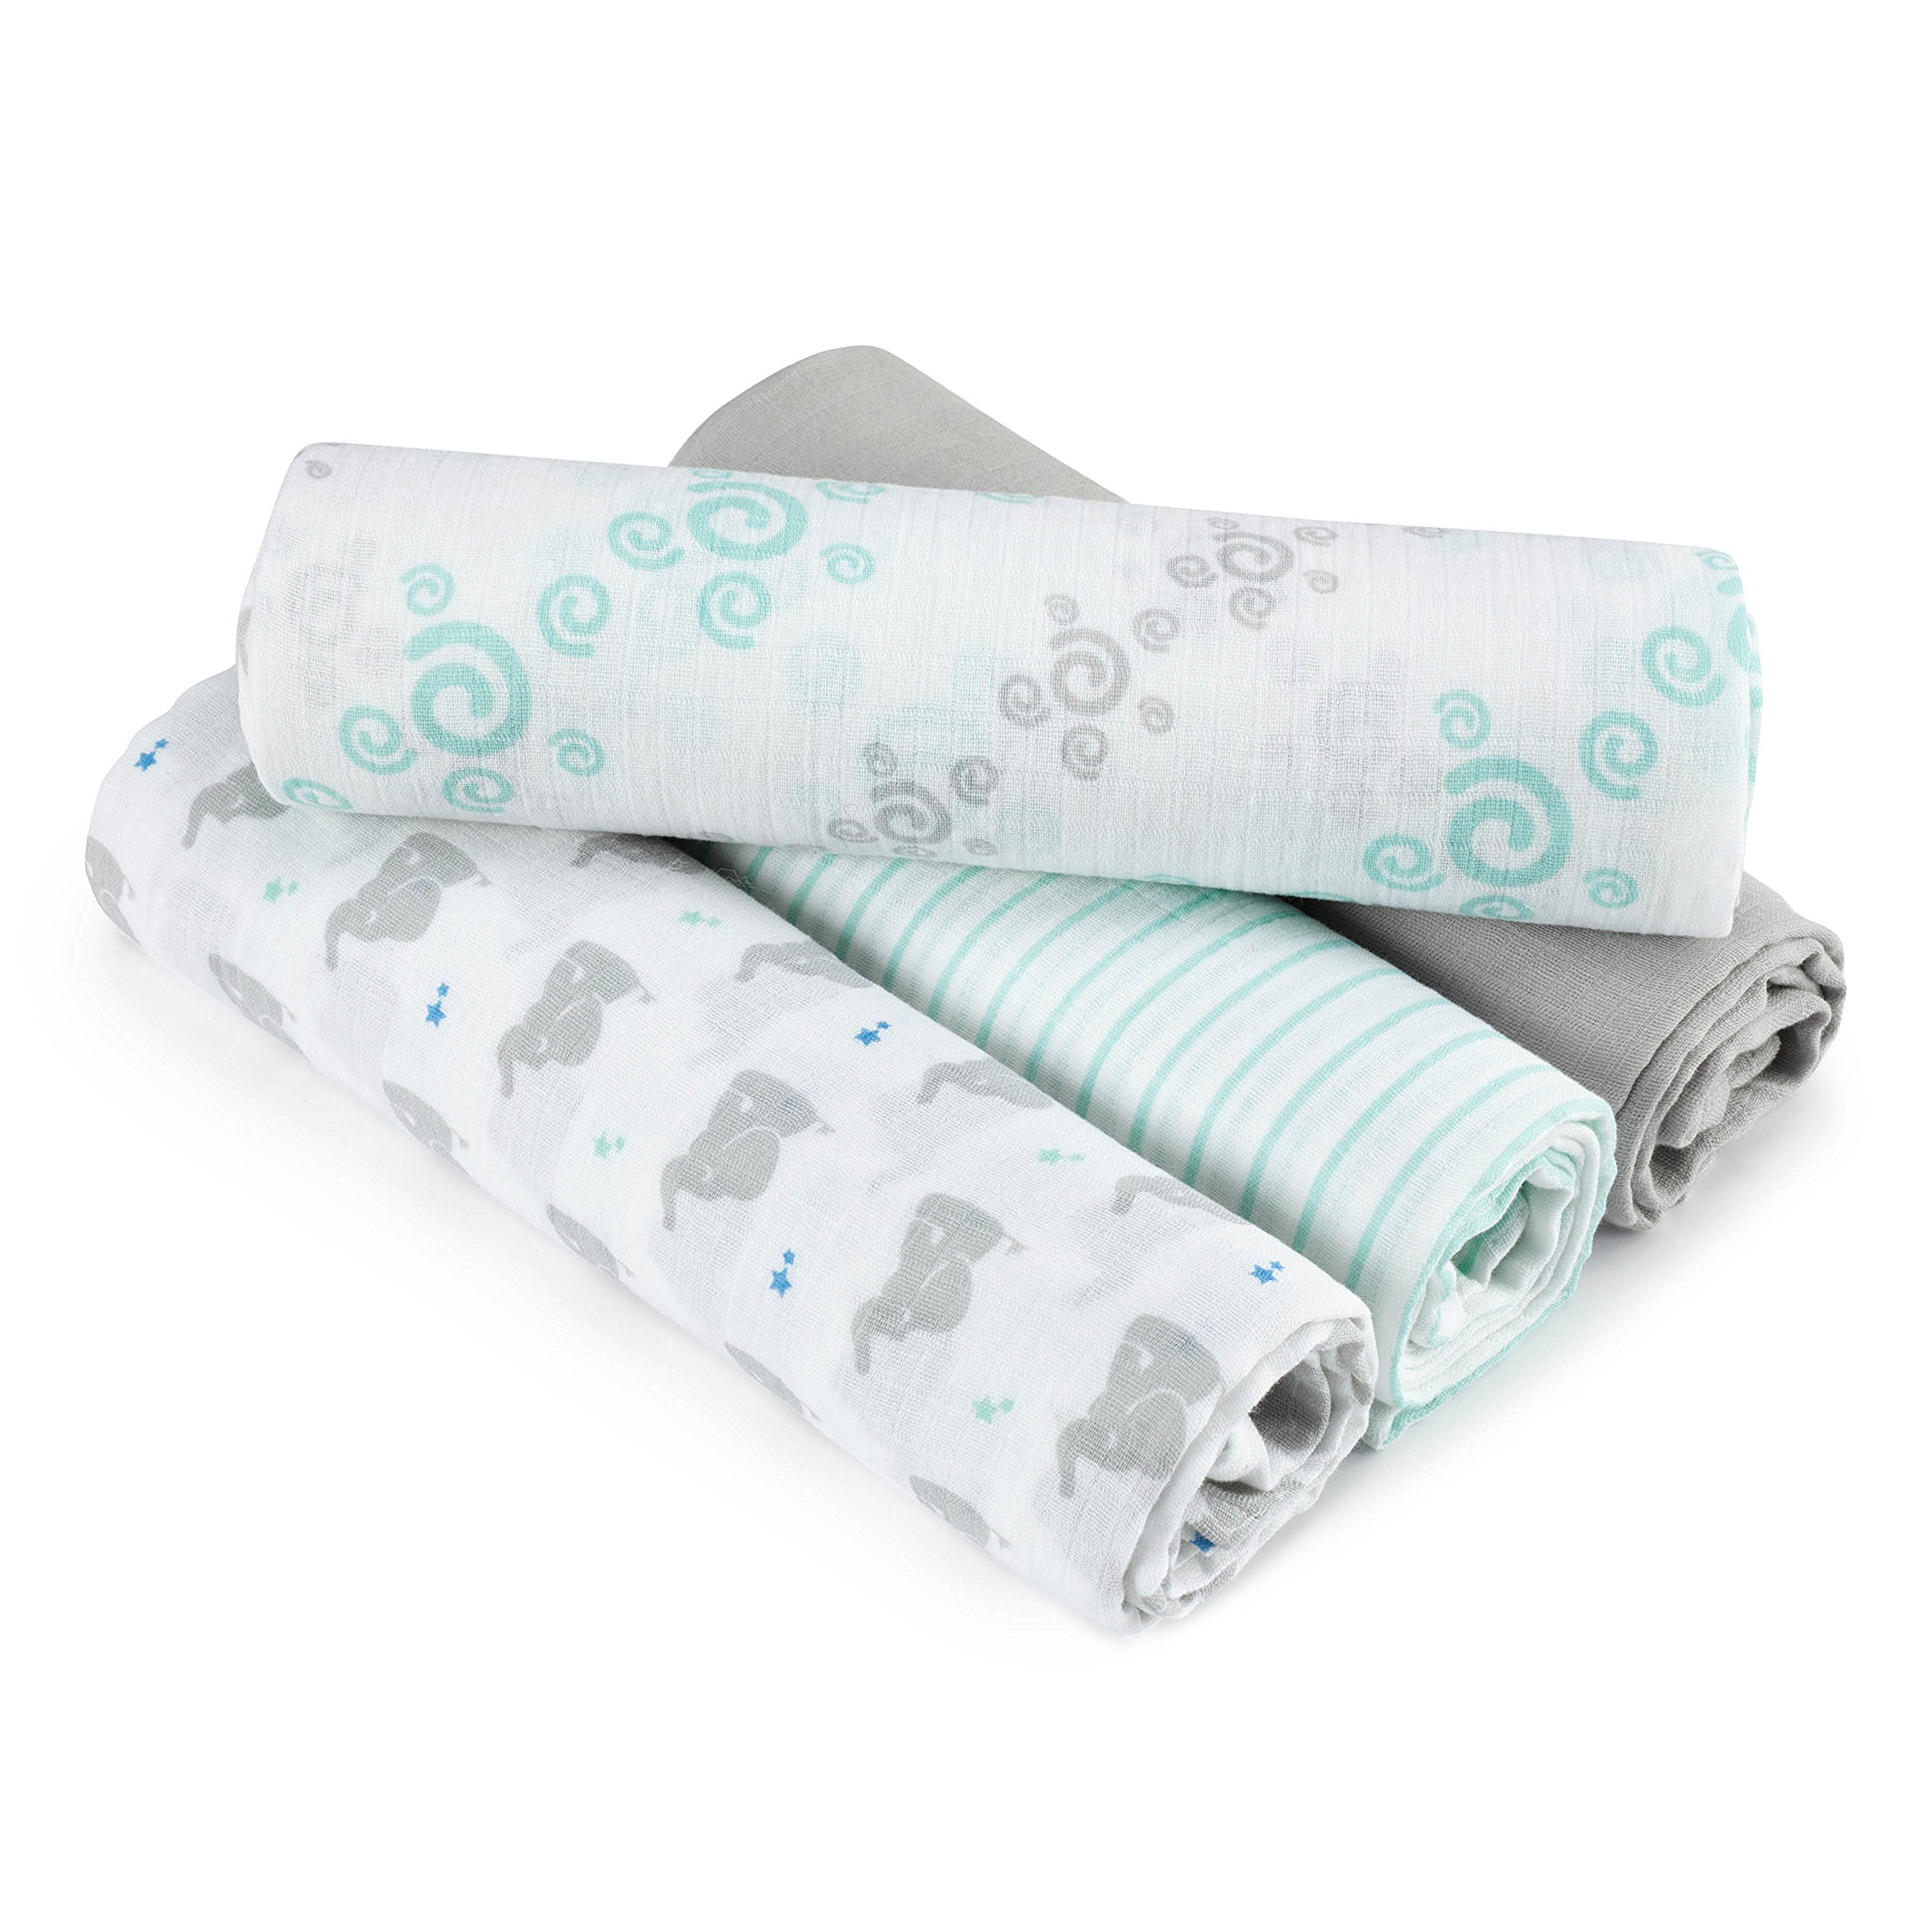 aden by aden + anais Swaddle Baby Blanket, 100% Cotton Muslin, 4 Pack, 44 X 44 inch, Baby Star - Elephants by aden